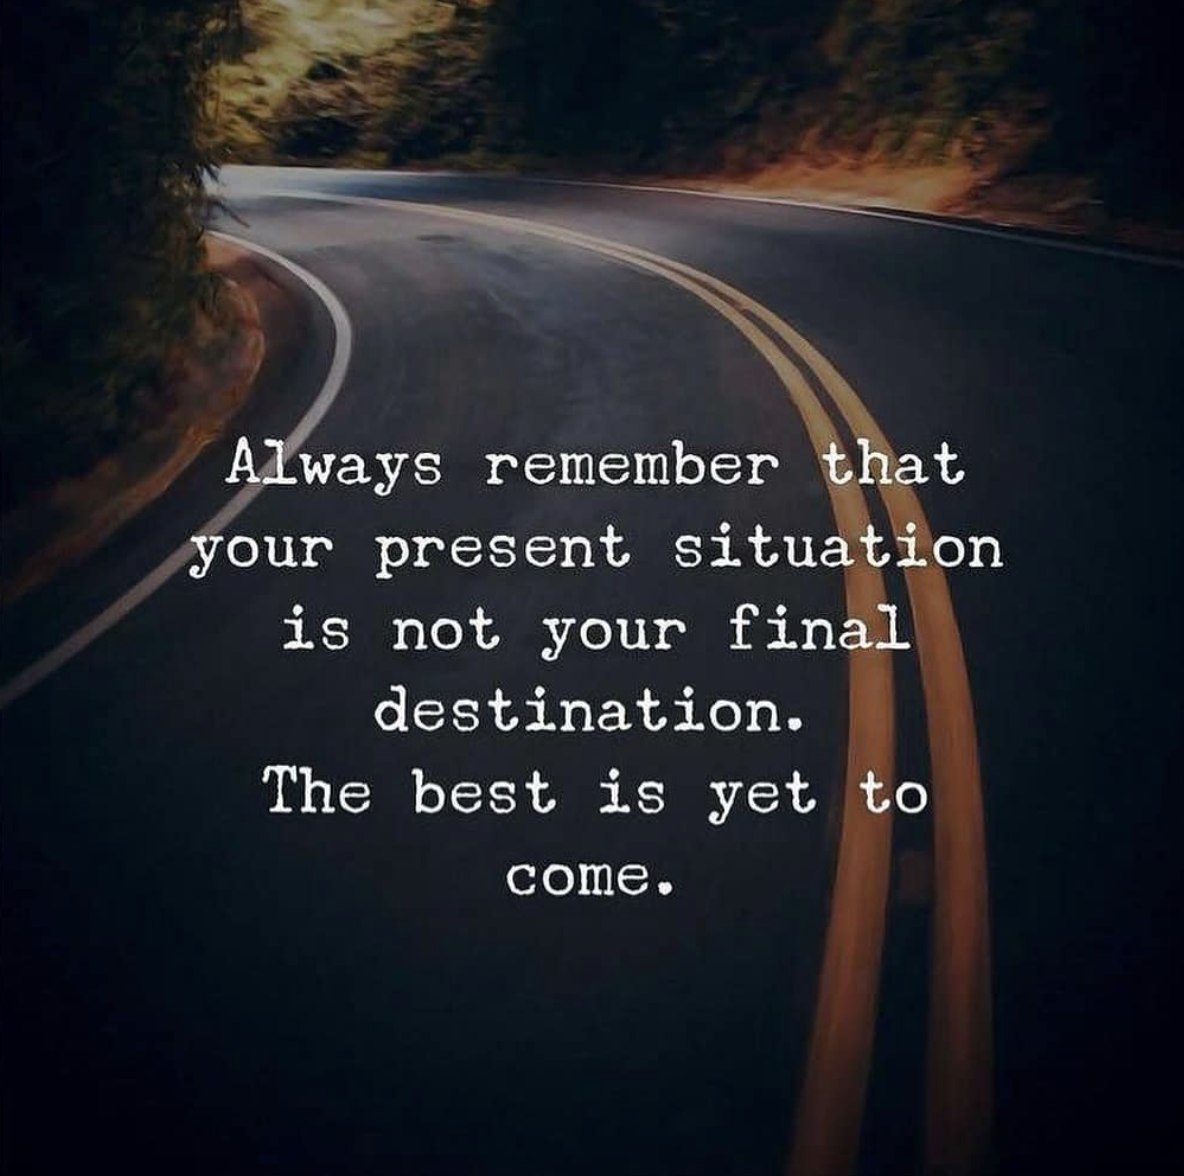 [Image] Always remember that your present situation is not your final destination. The best is yet to come.